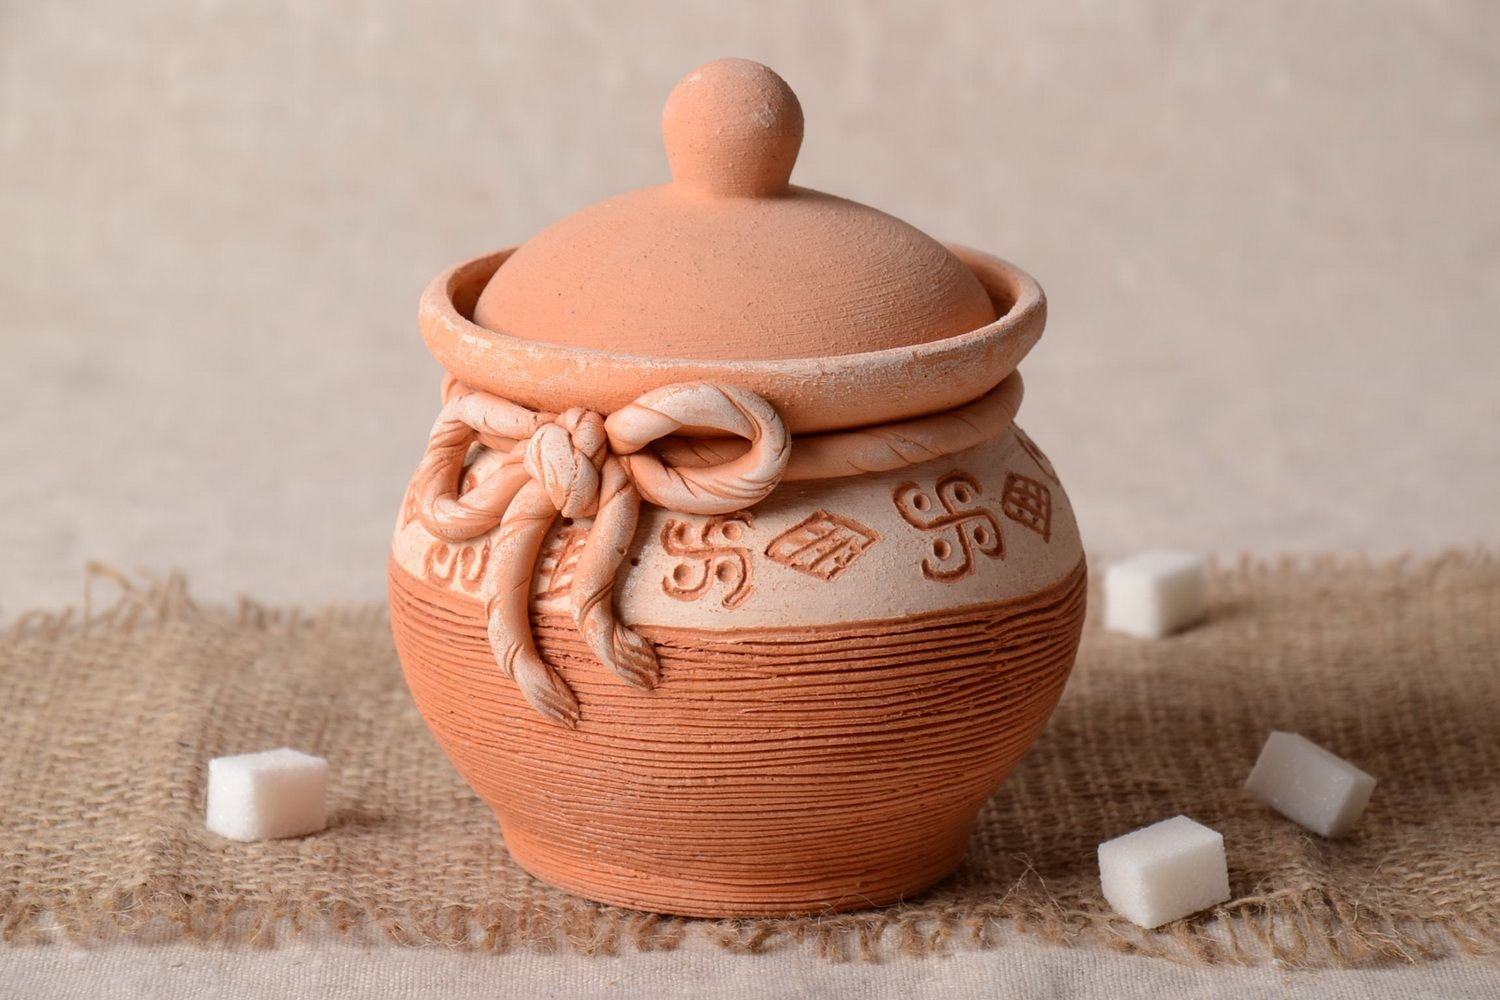 Small Handmade Ceramic Sugar Bowl Clay Pot With Lid Jar For Sugar Pottery Works